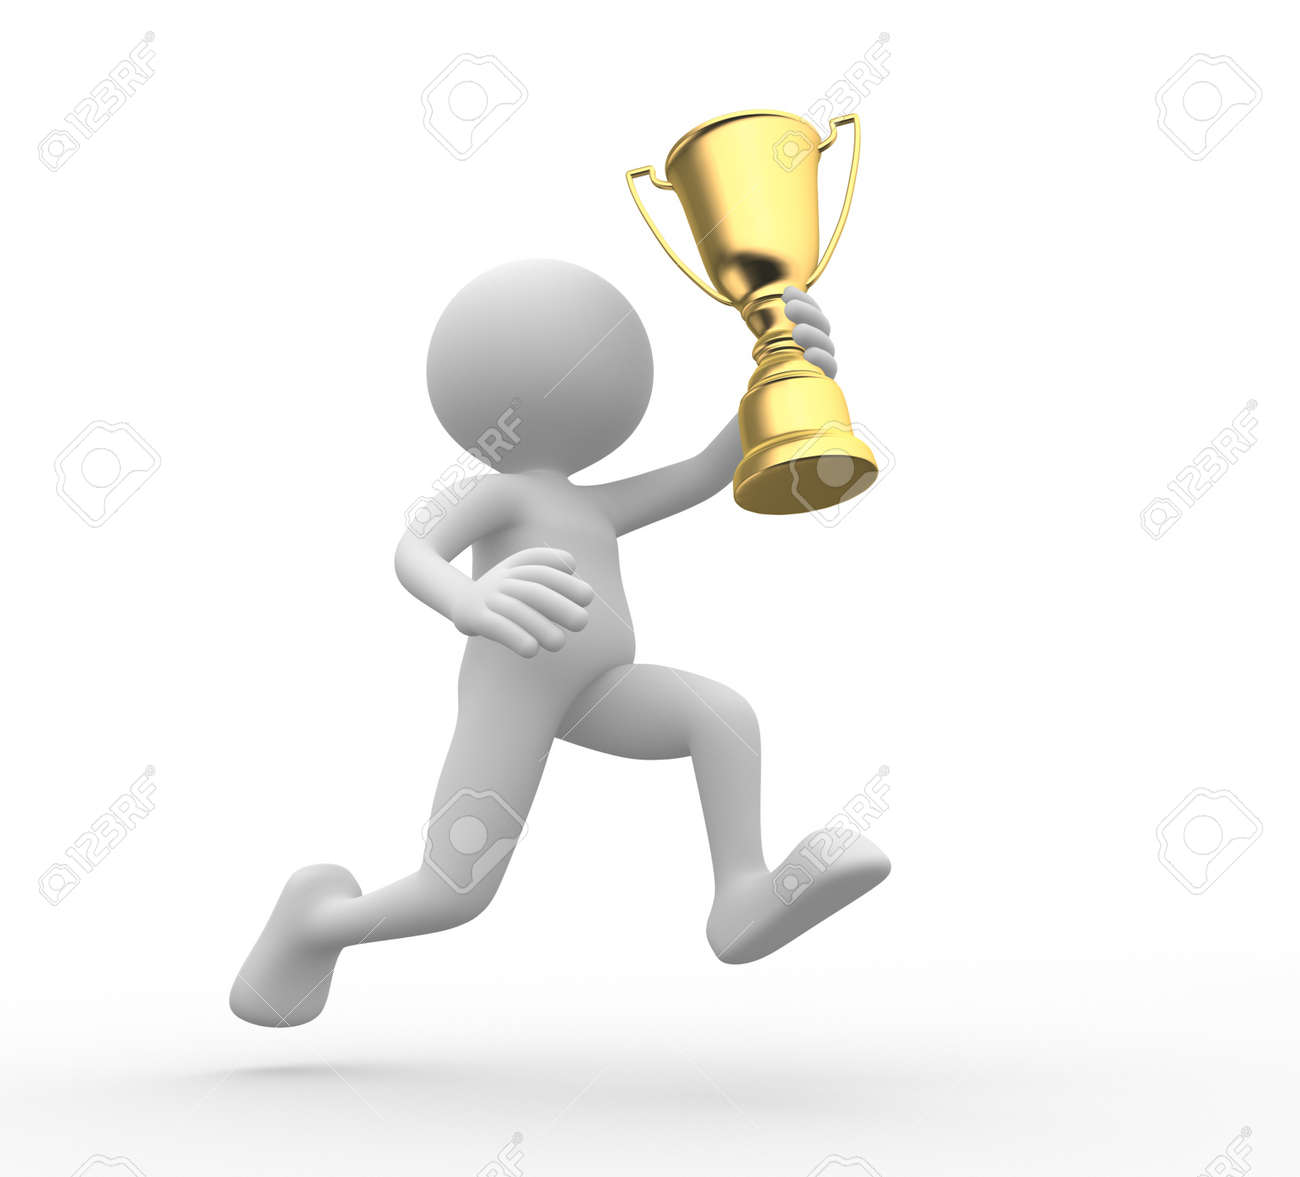 3d people - man, person holding golden trophy Stock Photo - 20852118